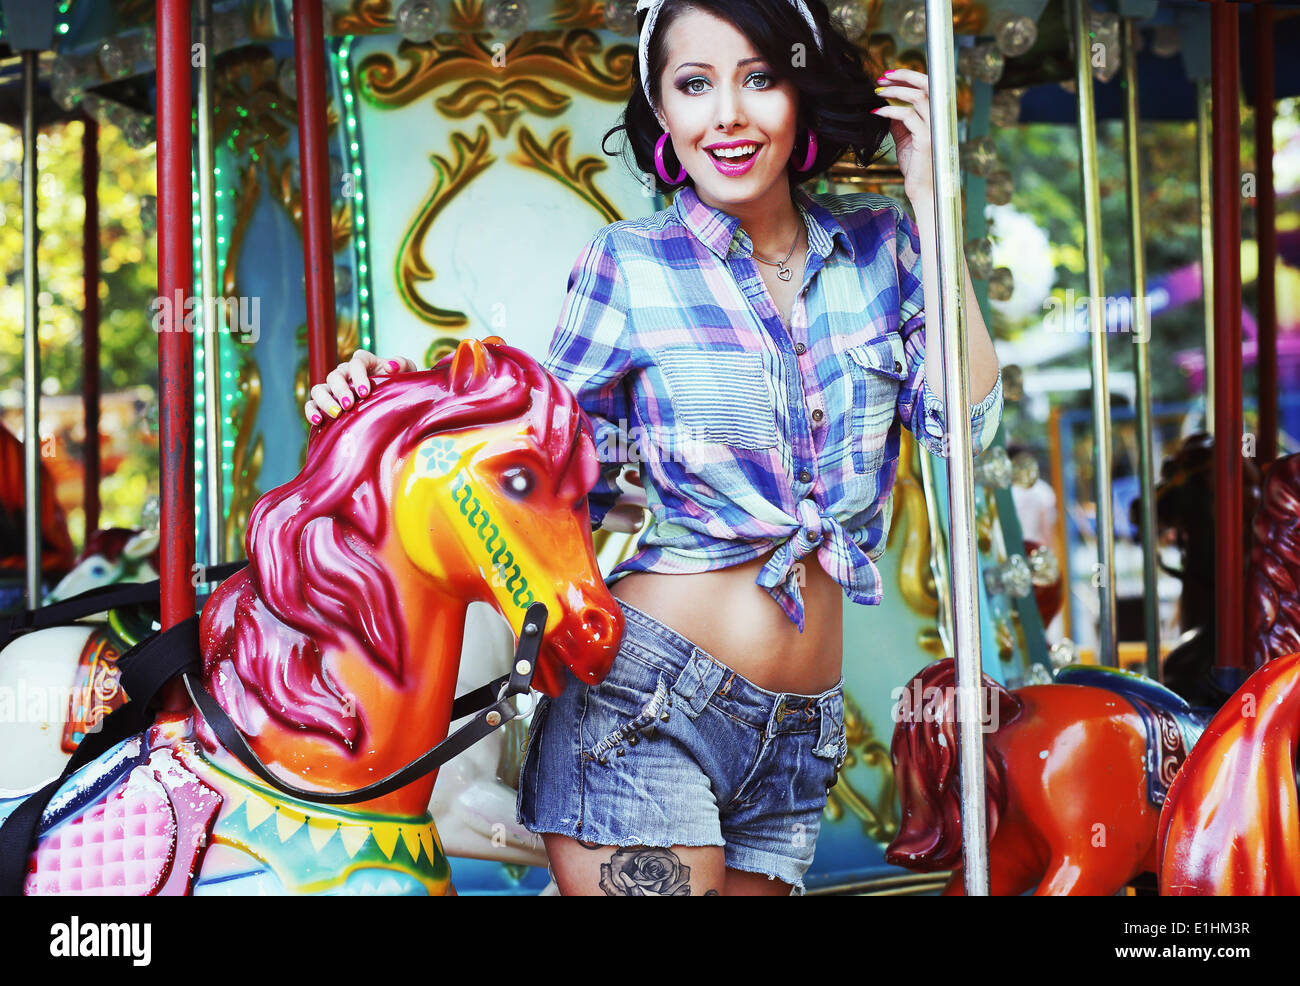 Rejoicing. Merriment. Excited Lively Woman in Funfair Smiling - Stock Image